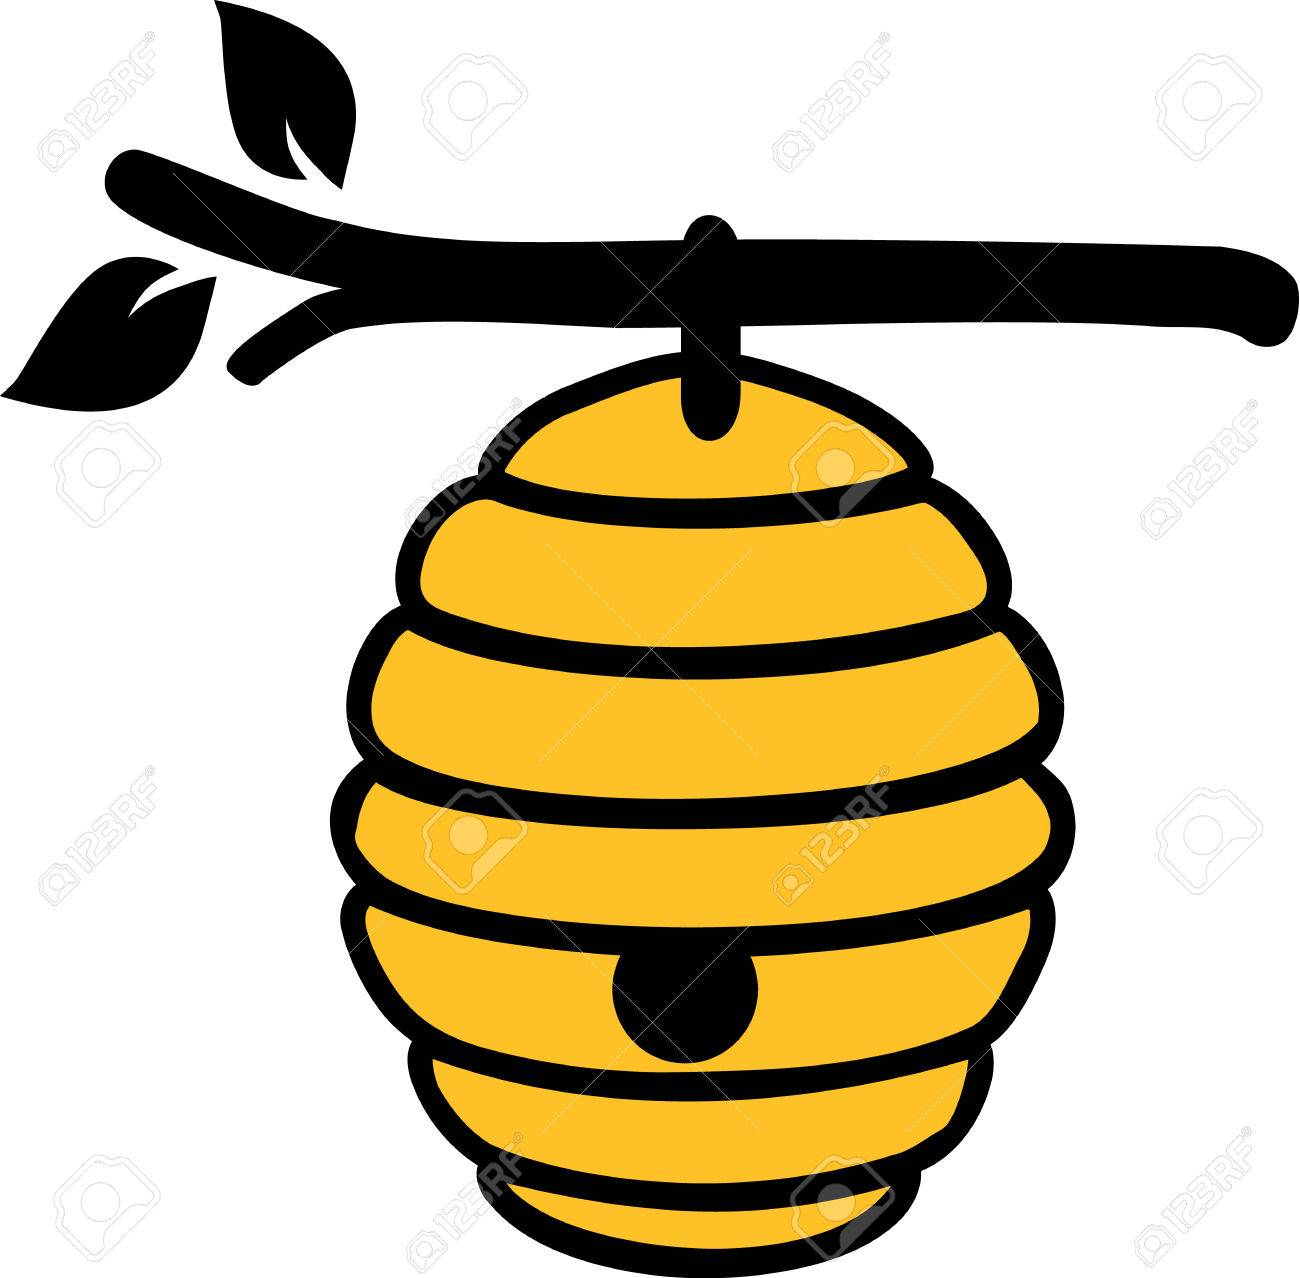 beehive on branch royalty free cliparts vectors and stock rh 123rf com beehive cartoon black and white beehive cartoon png